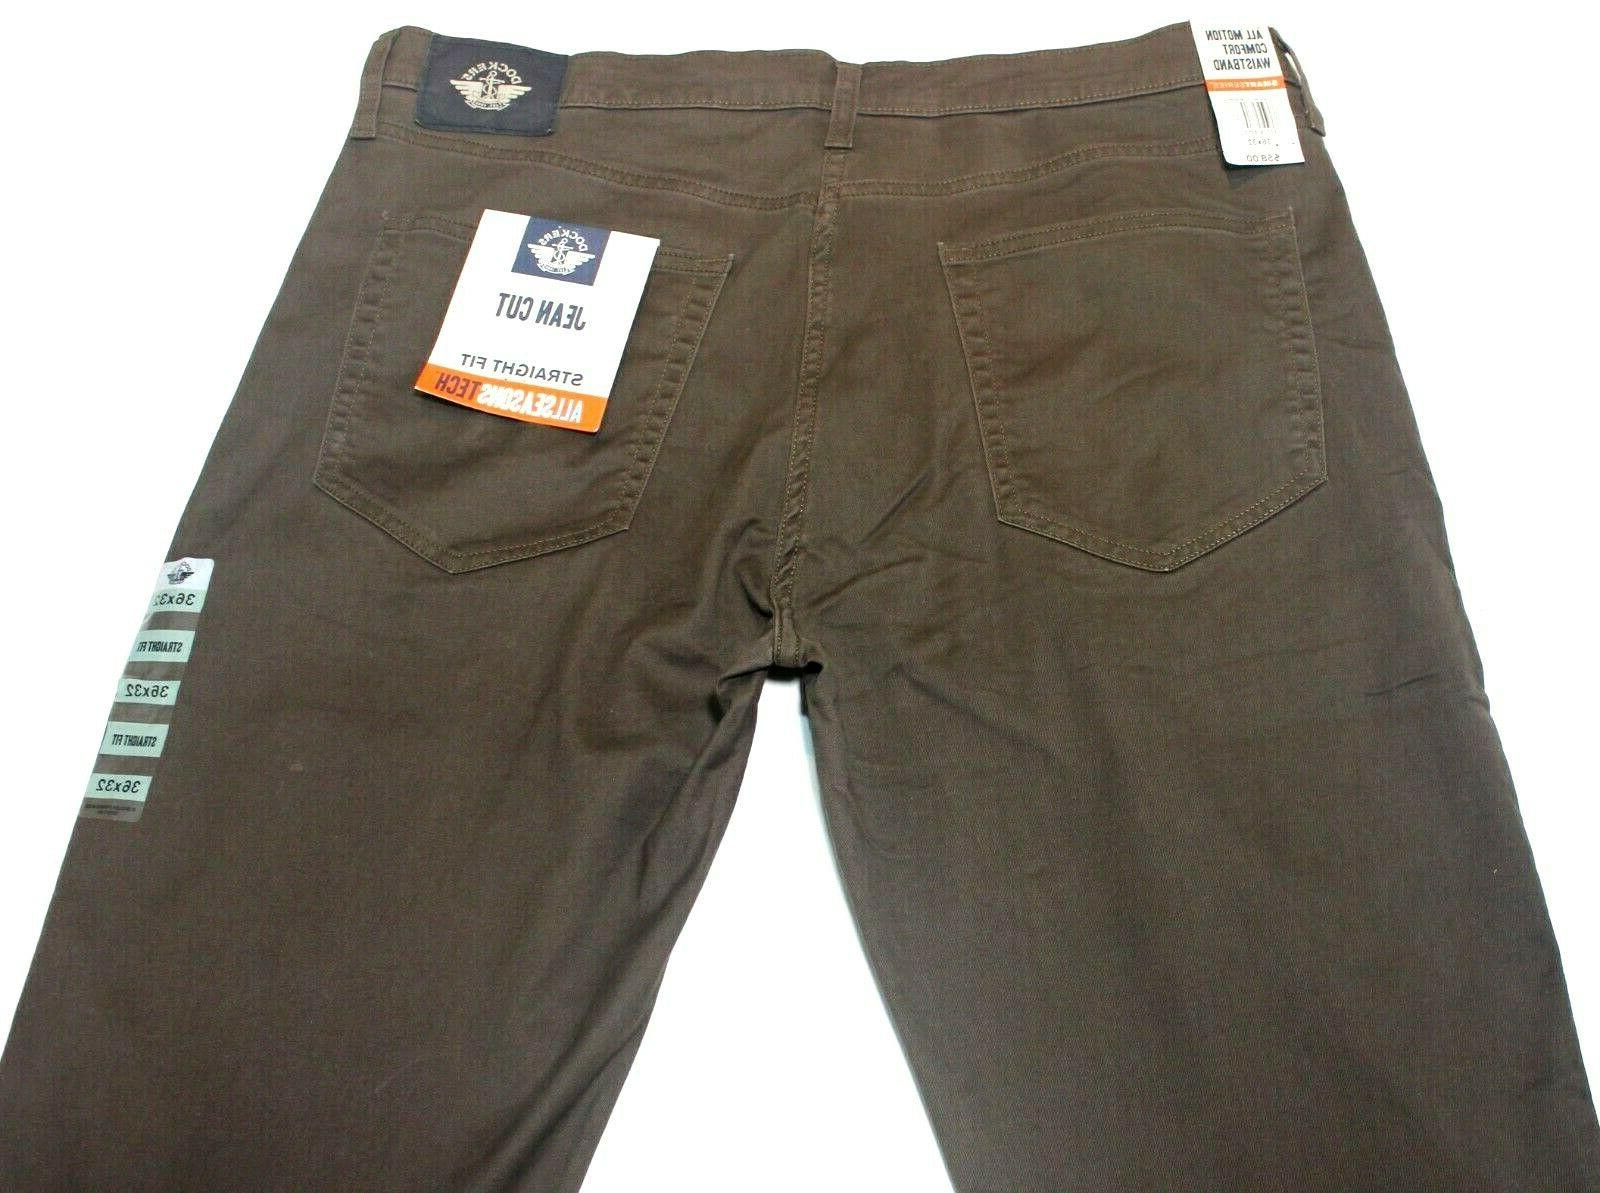 Men's Jean Cut Straight All Stretch Pants